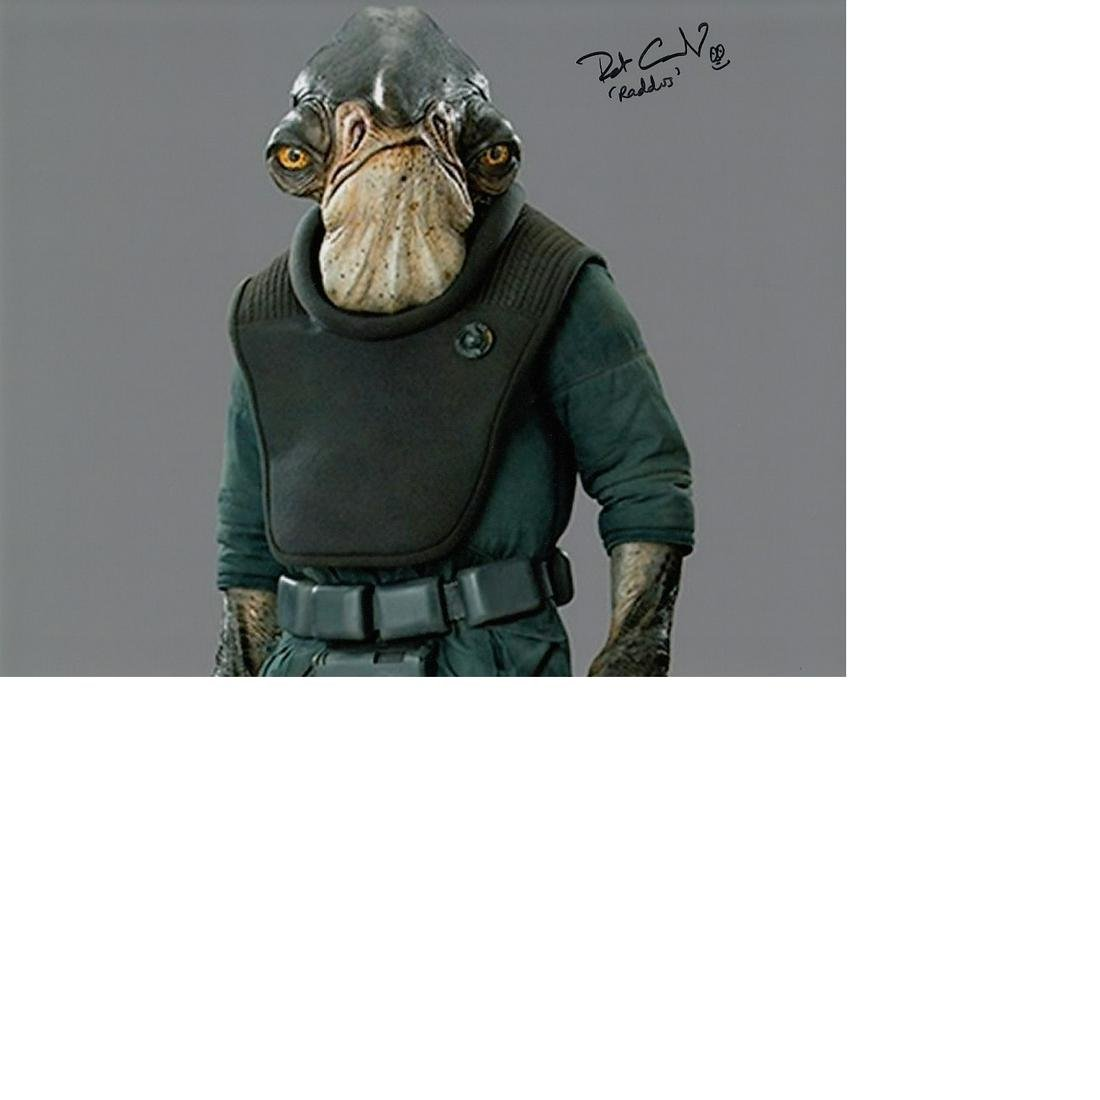 Patrick Comerford Star Wars hand signed 10x8 photo.